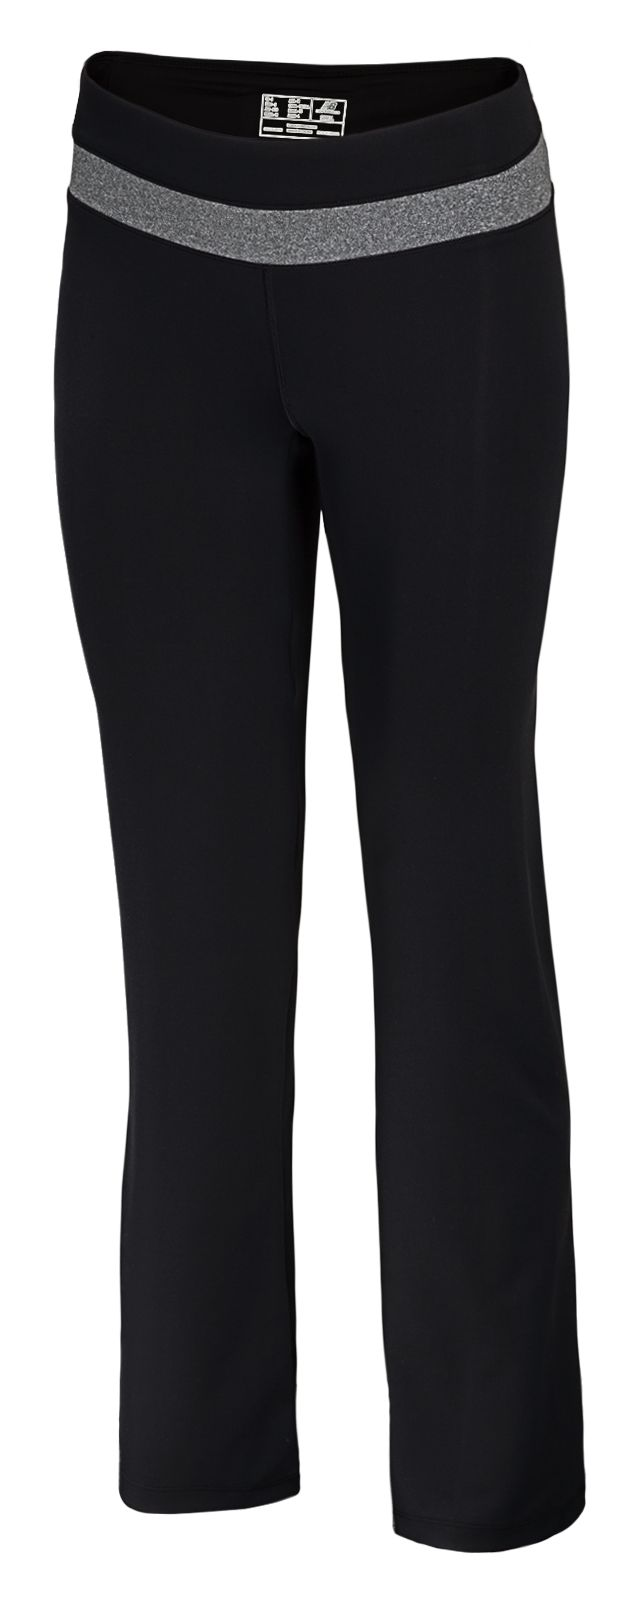 Heather Inset Pant